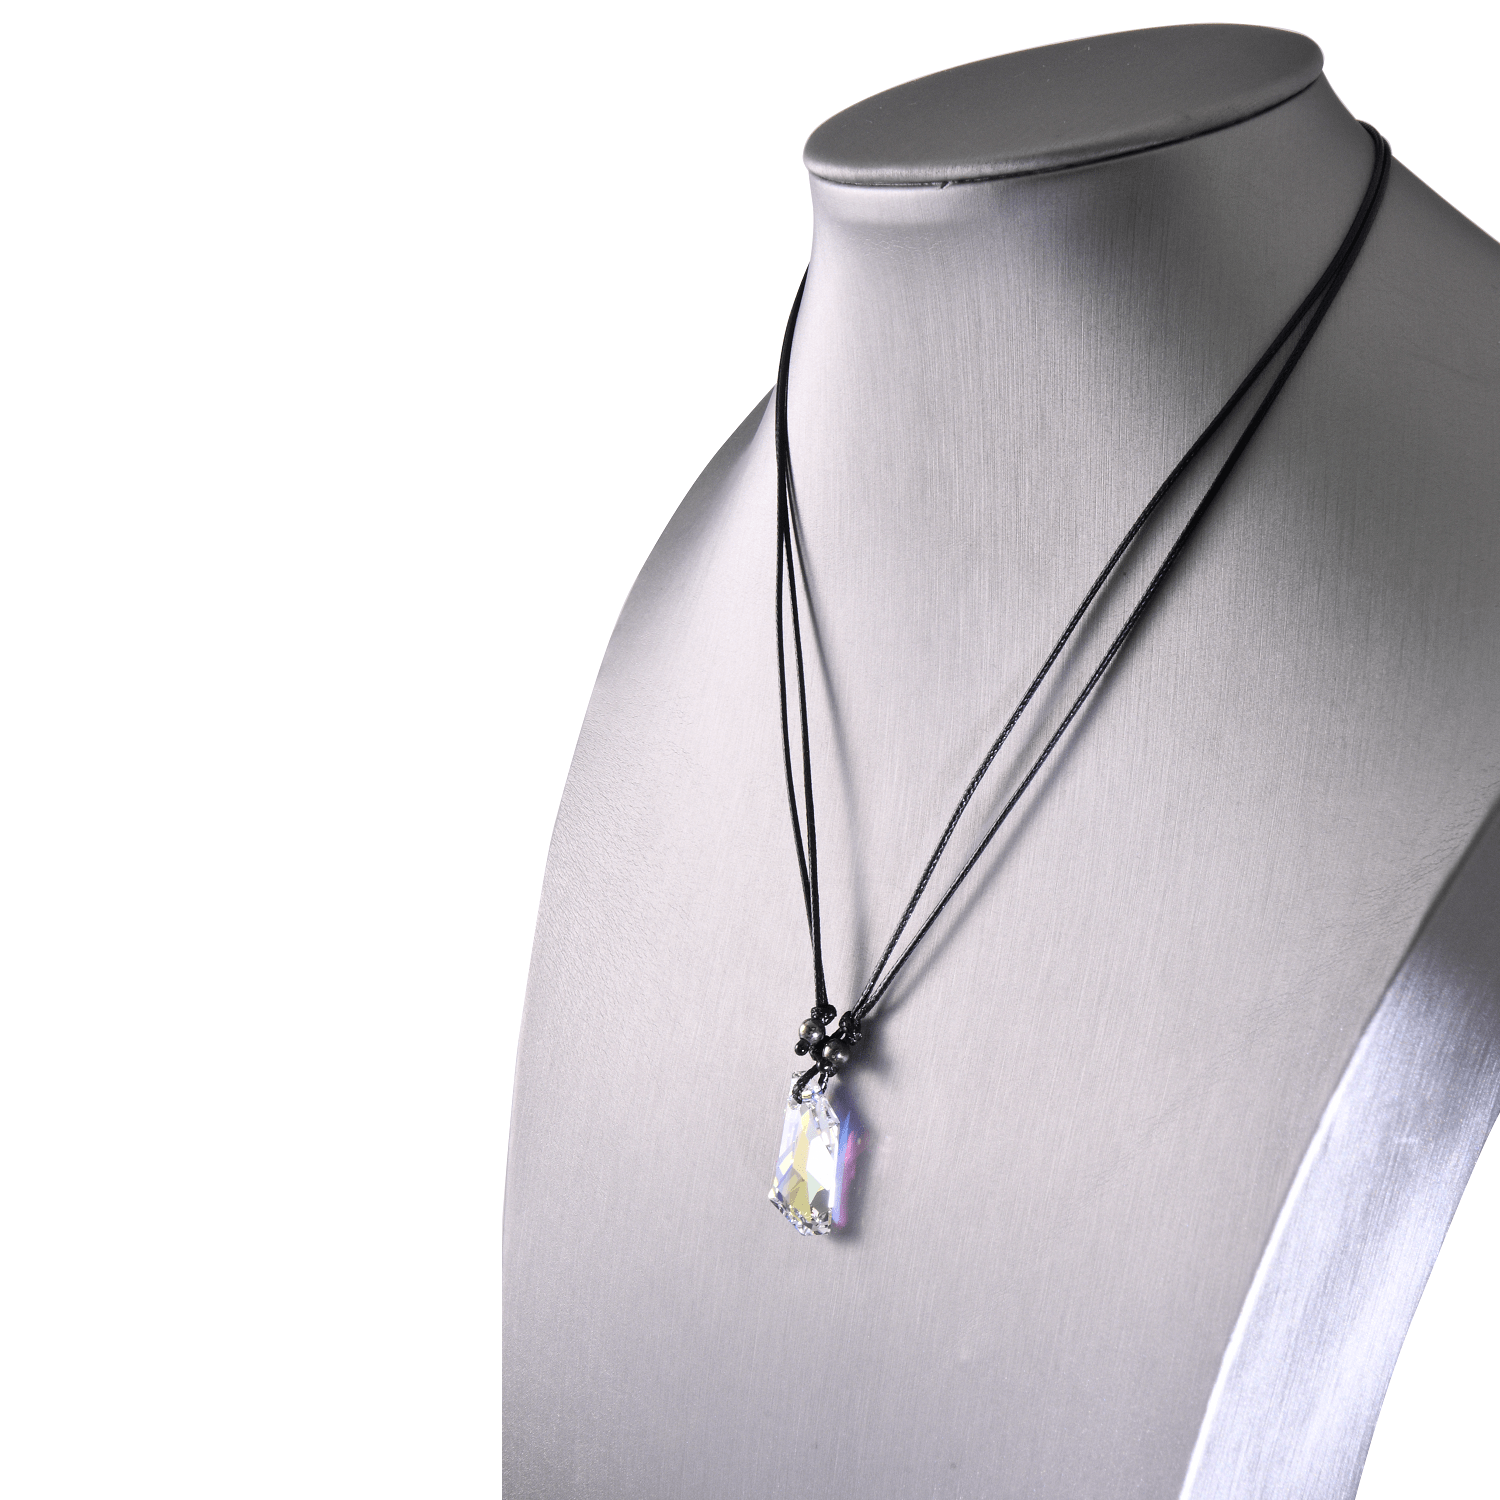 【DE-ART】Polygon Swarovski® Crystal Pendant - THE SPARKLE COLLECTION by GERMAN POOL